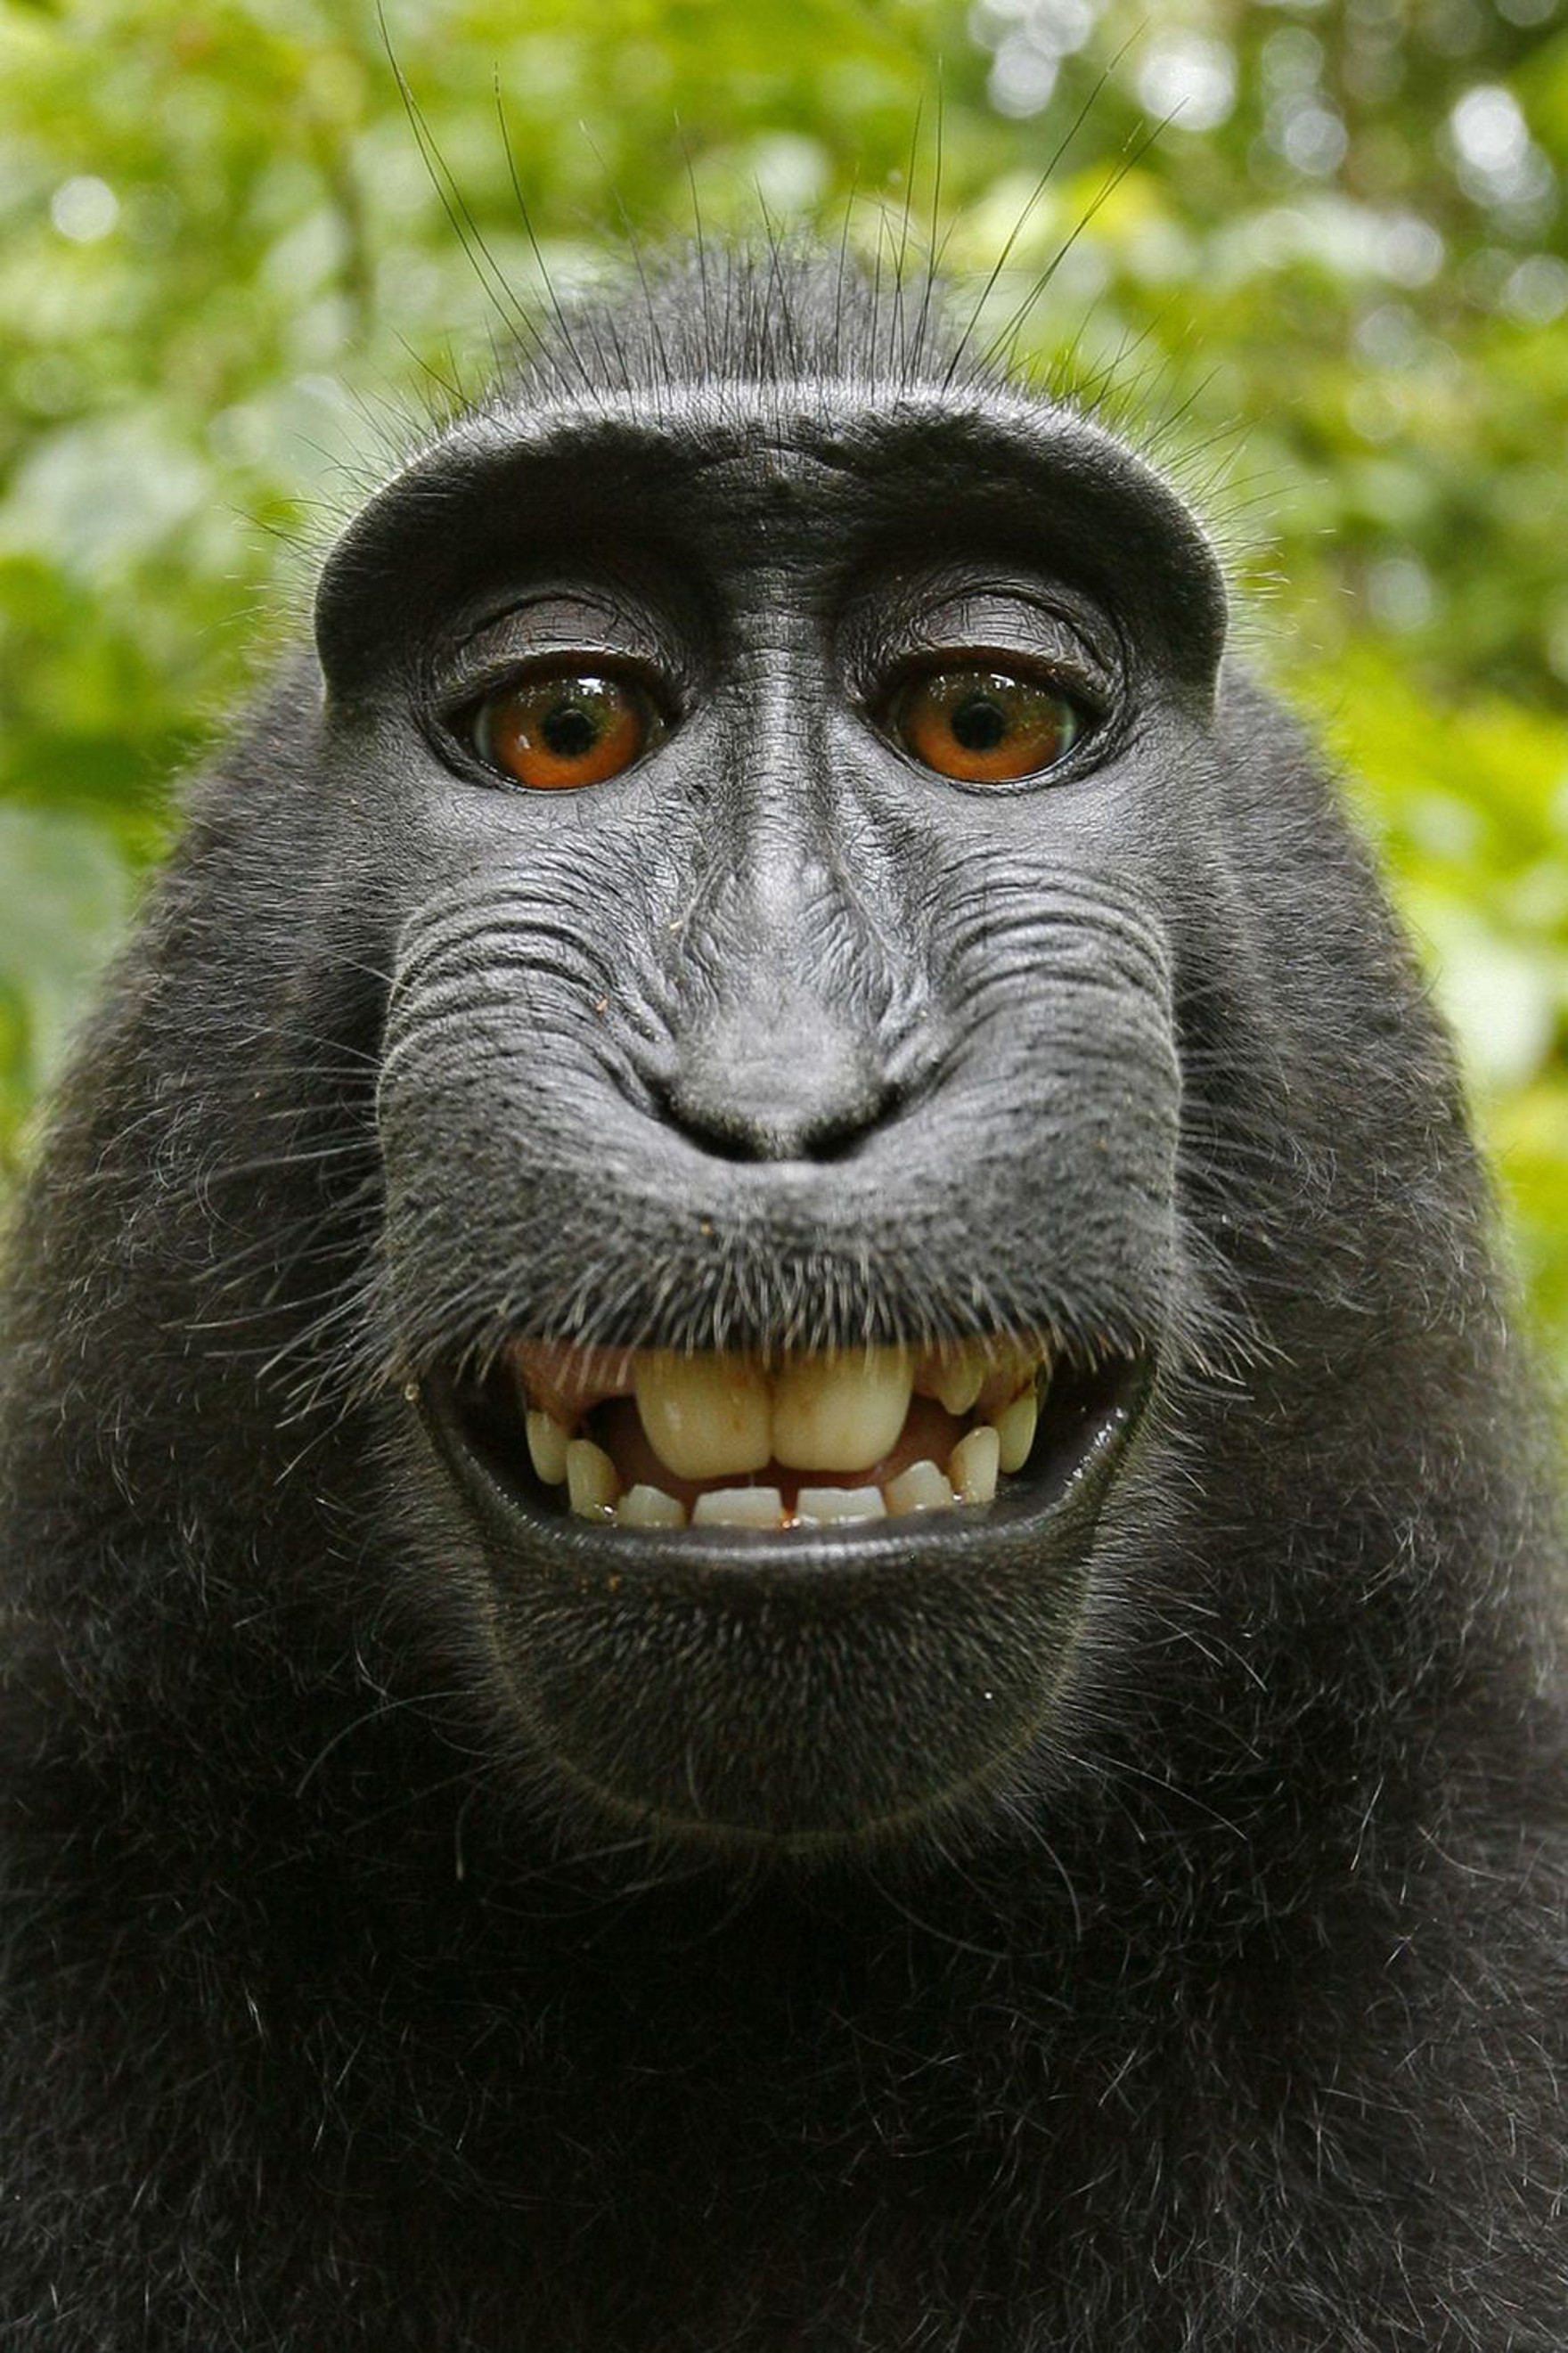 Photographie d'un macaque